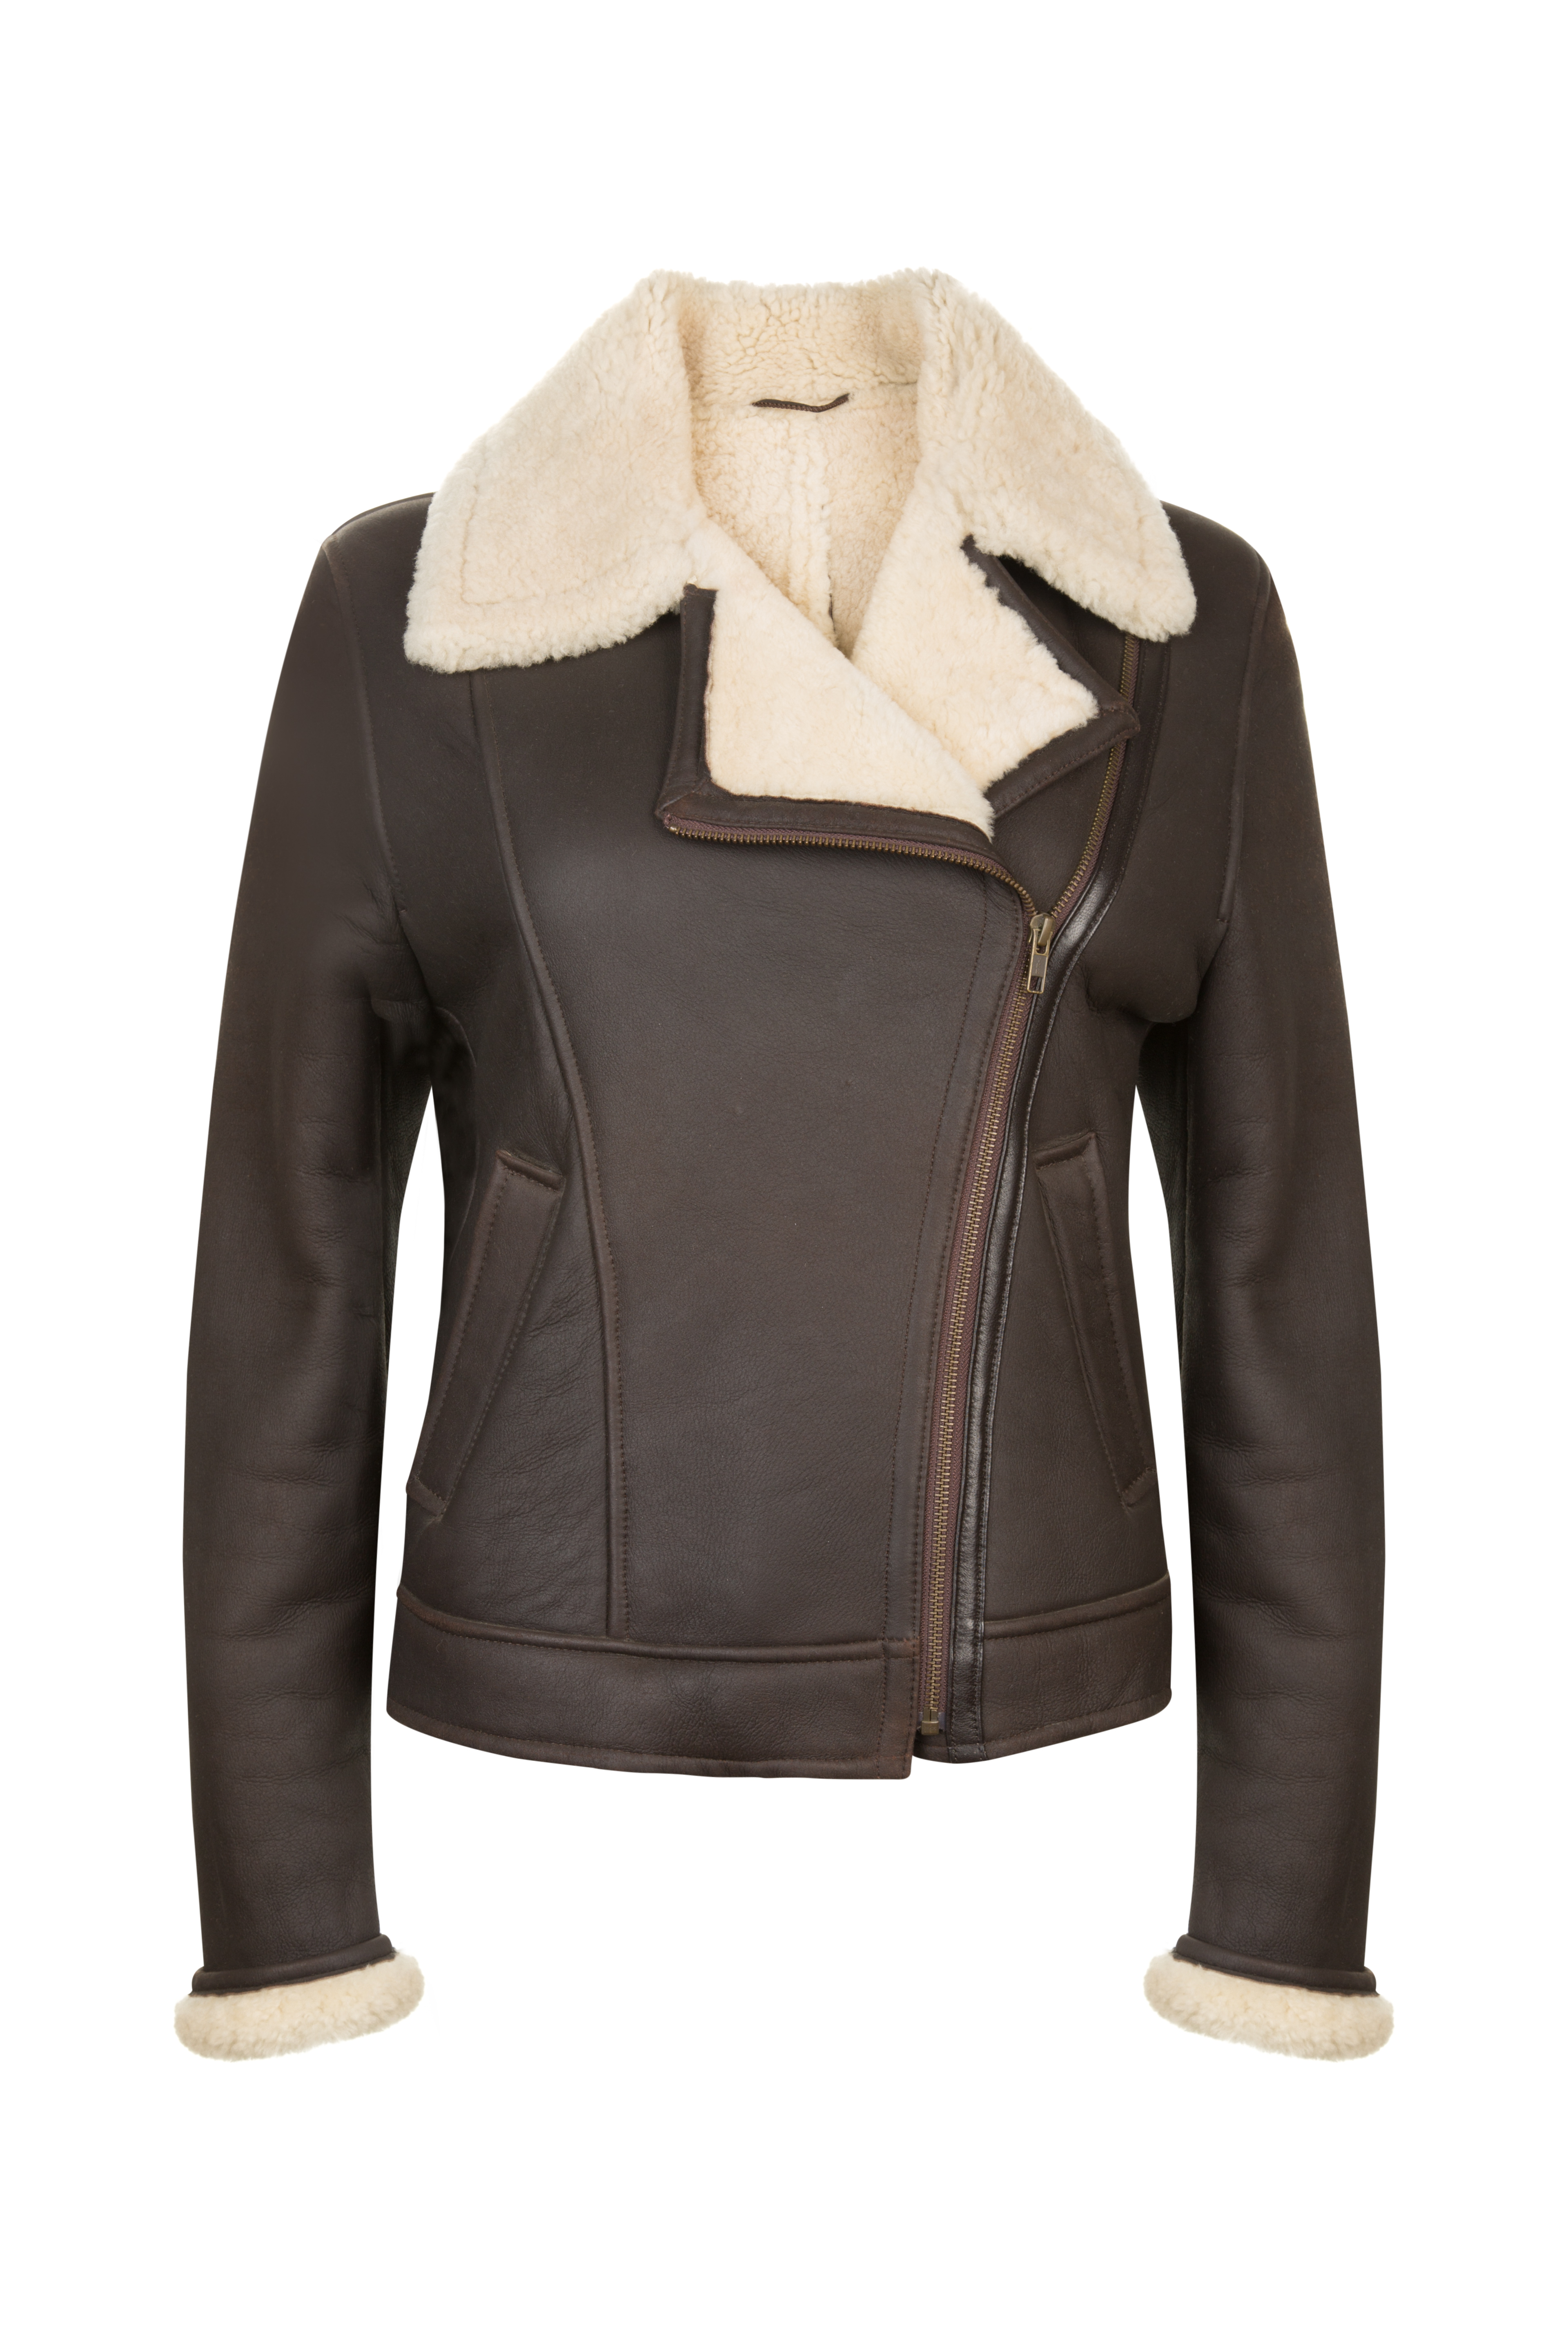 OBE Leather Amy Johnson Sheepskin Flying